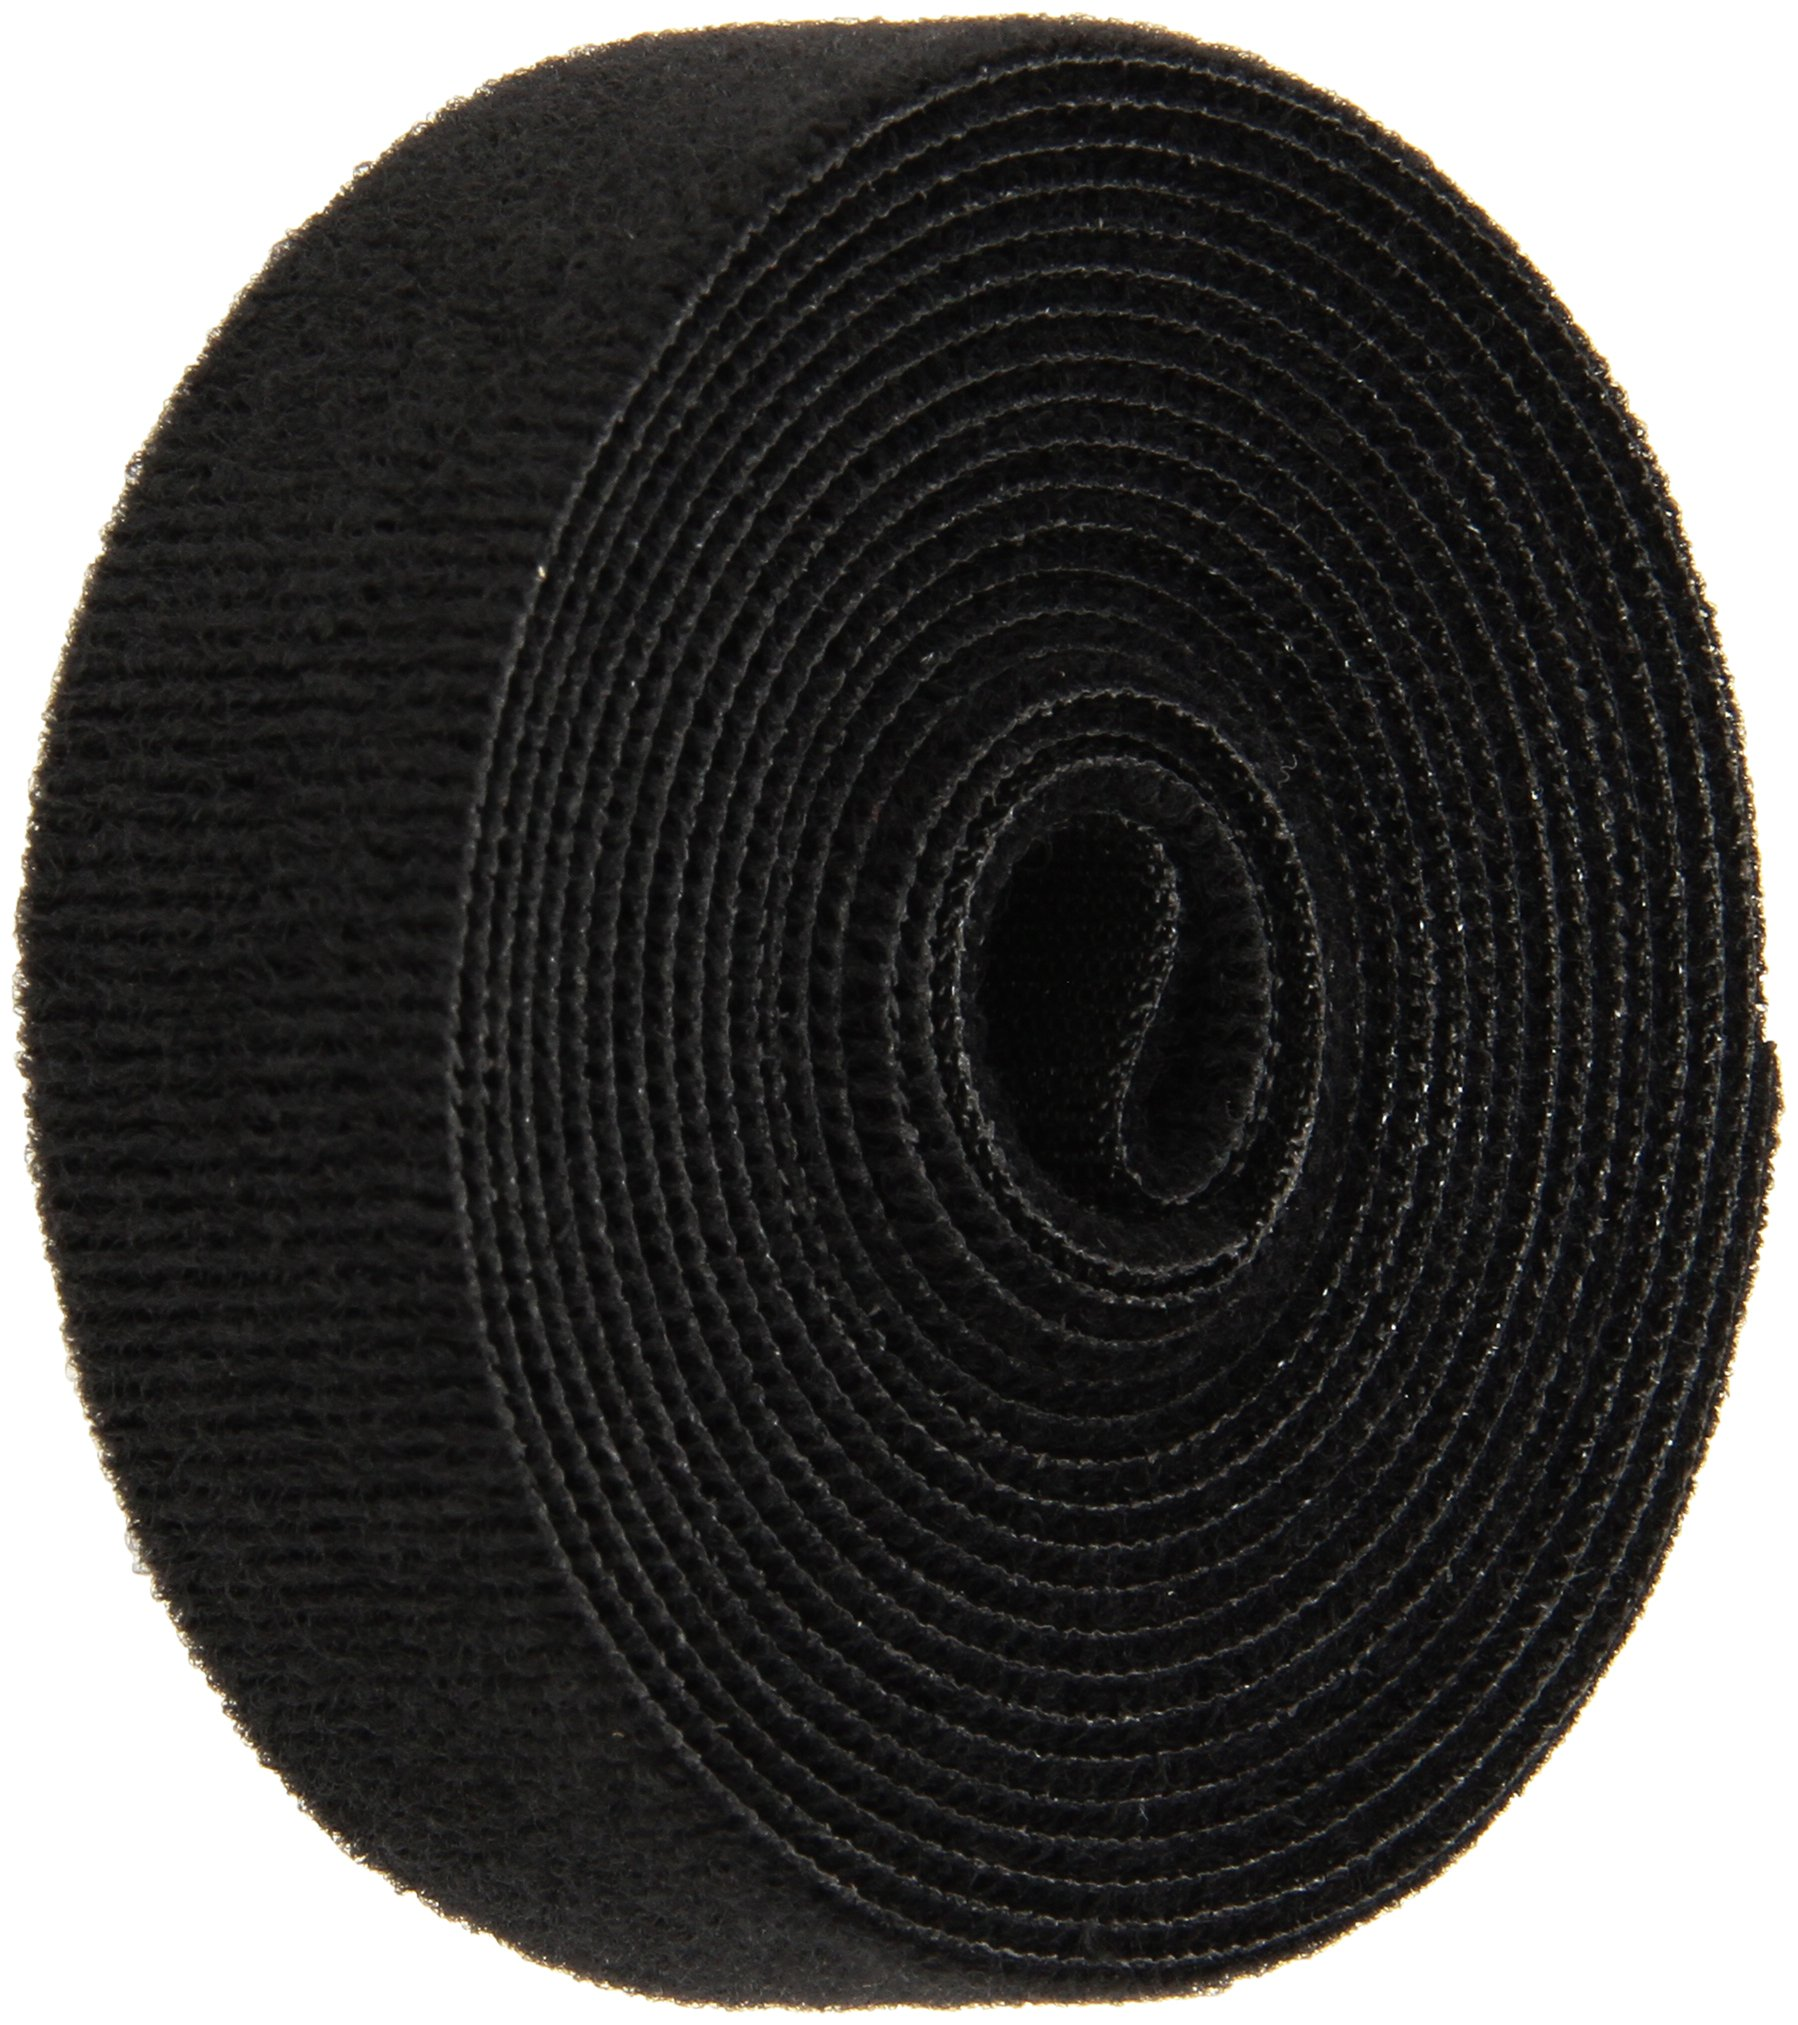 VELCRO 1804-OW-PB/B Black Nylon Onewrap Velcro Strap, Hook and Loop, 1'' Wide, 10' Length